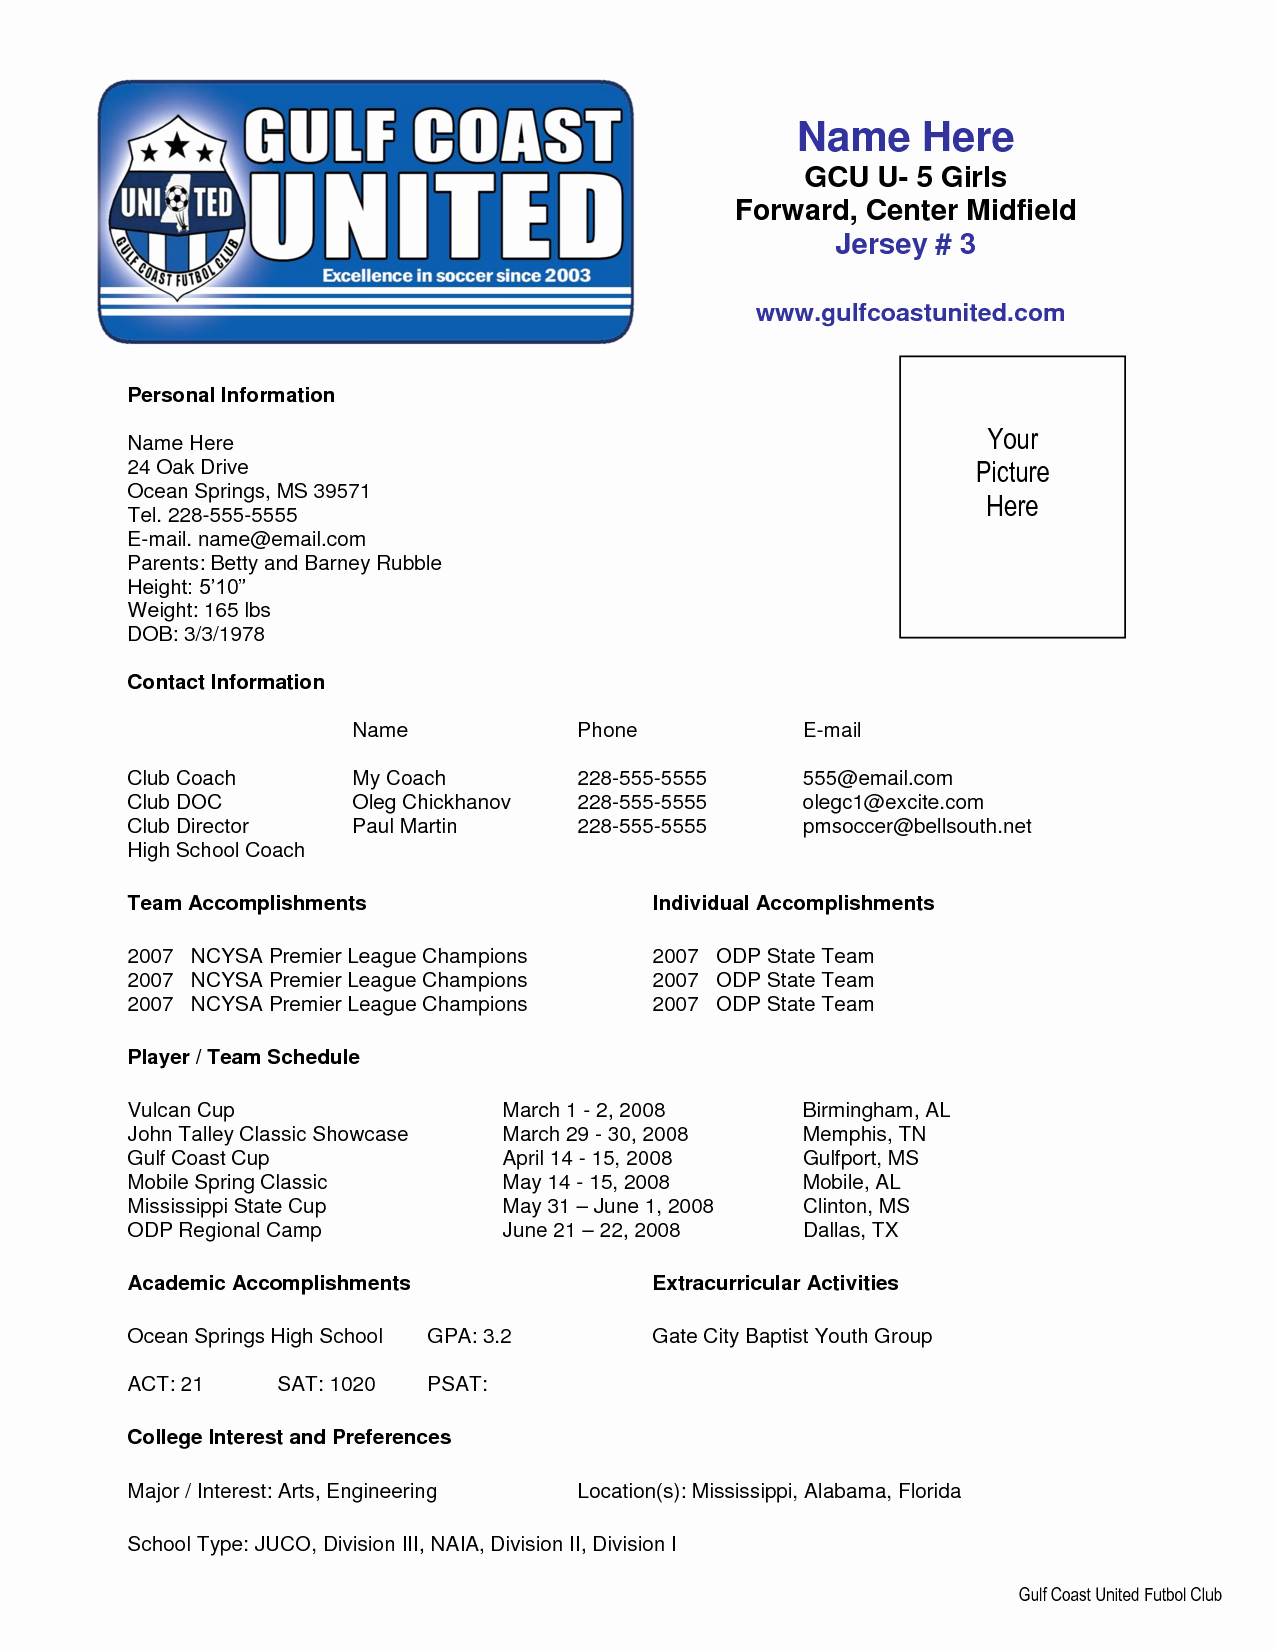 Sports Resume for Coaching Beautiful Sample soccer Resume Places to Visit